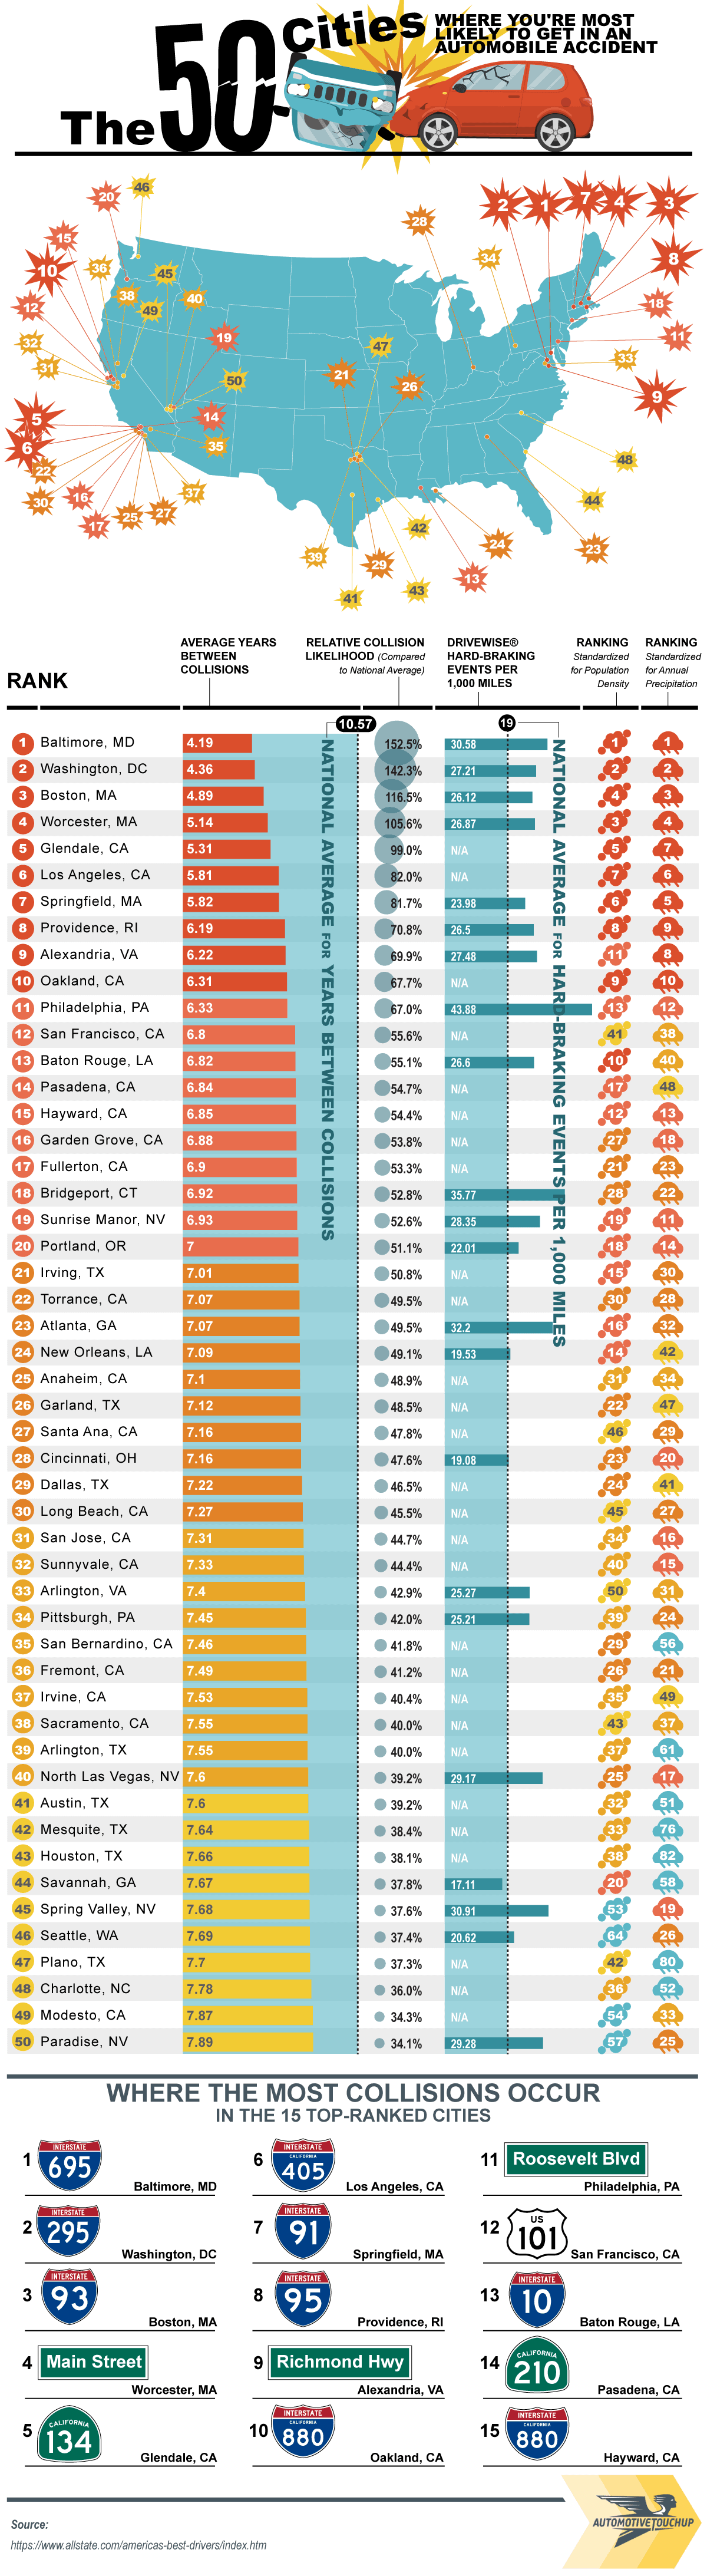 Here are the 50 Cities Where You're Most Likely to Get Into a Car Accident